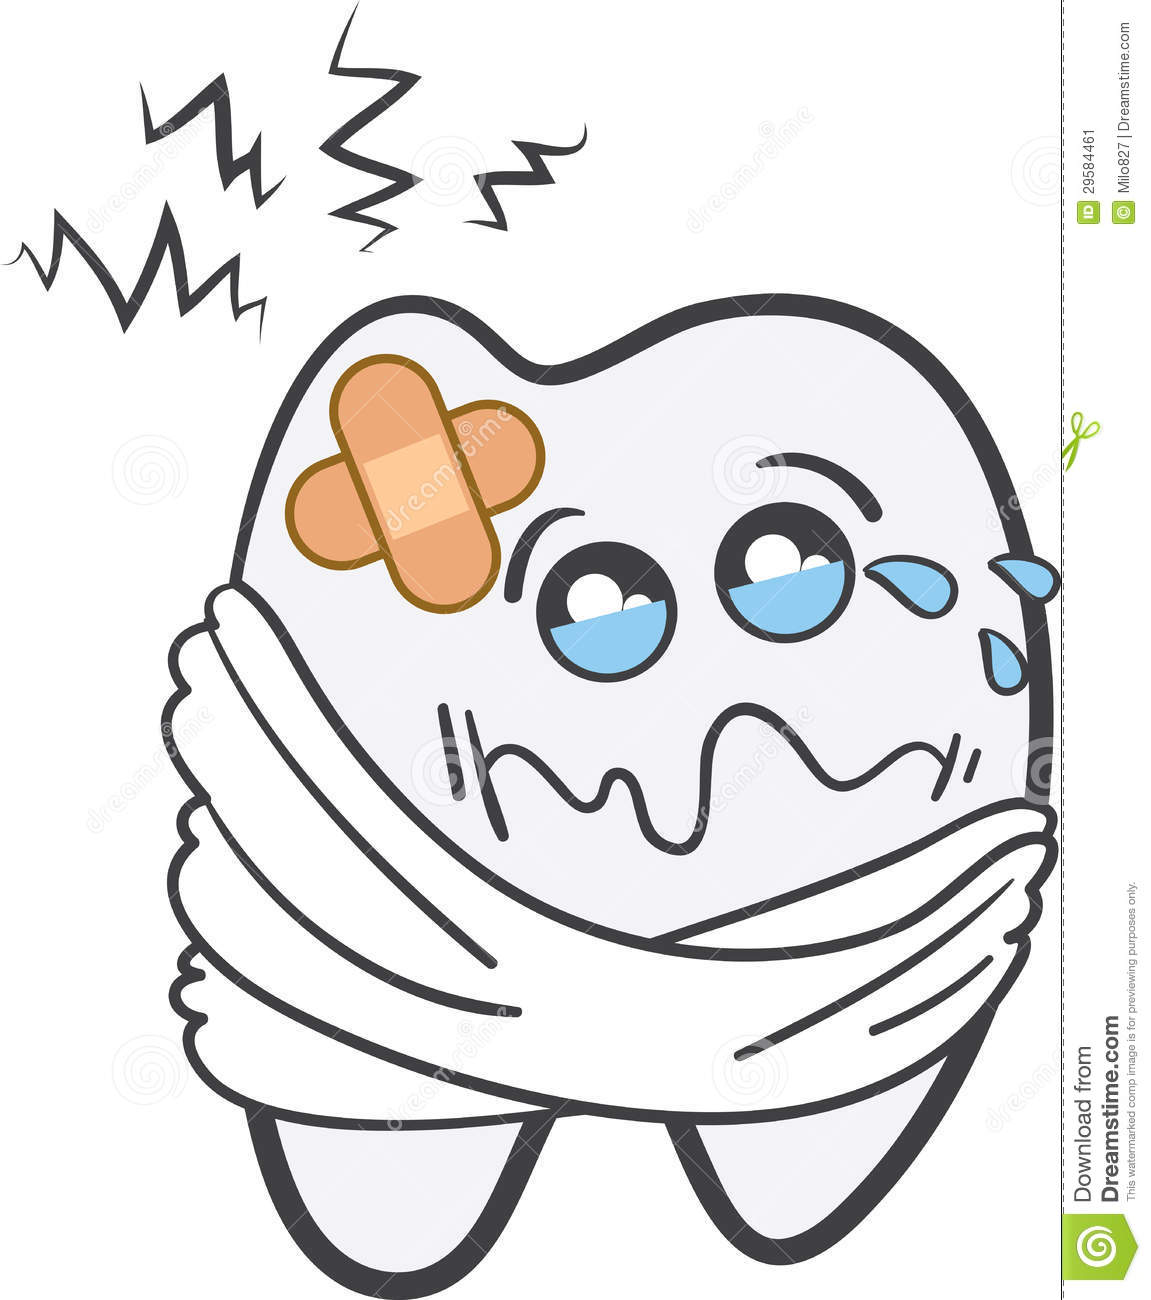 Toothache character in pain with bandage.